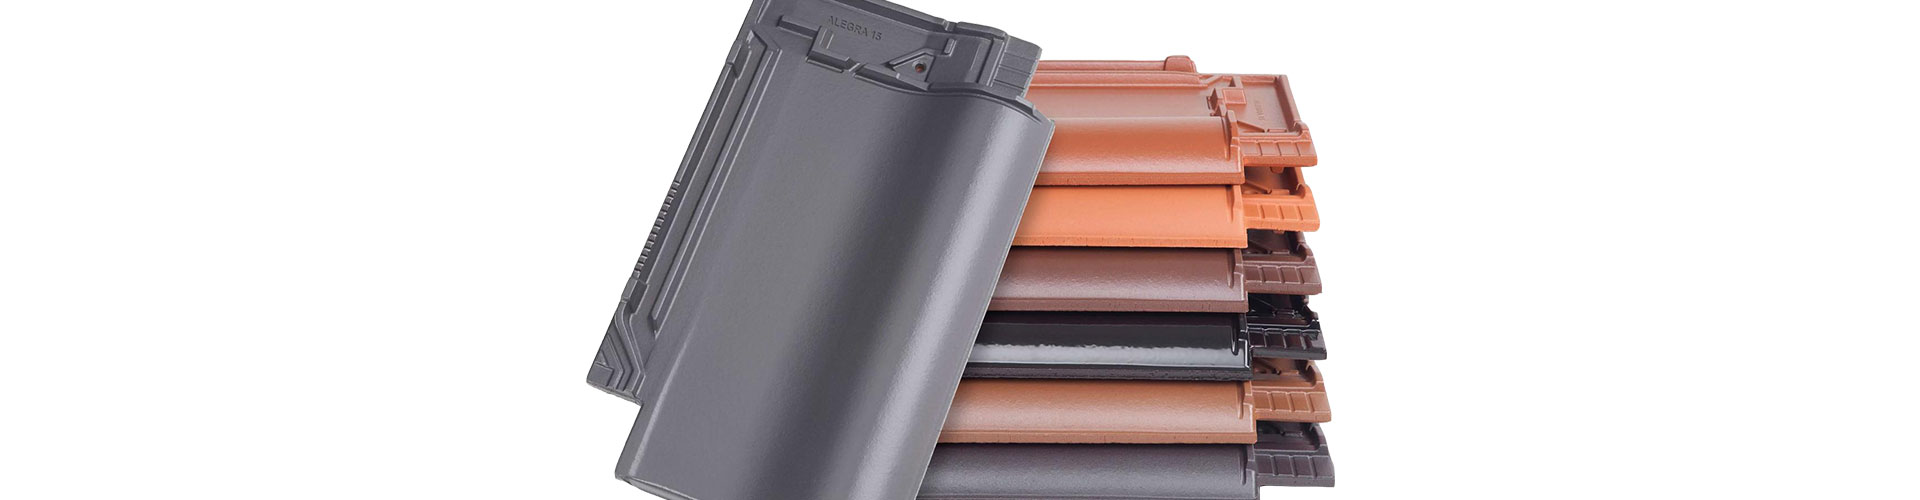 Koramic Roof Tile Banner - Product Image